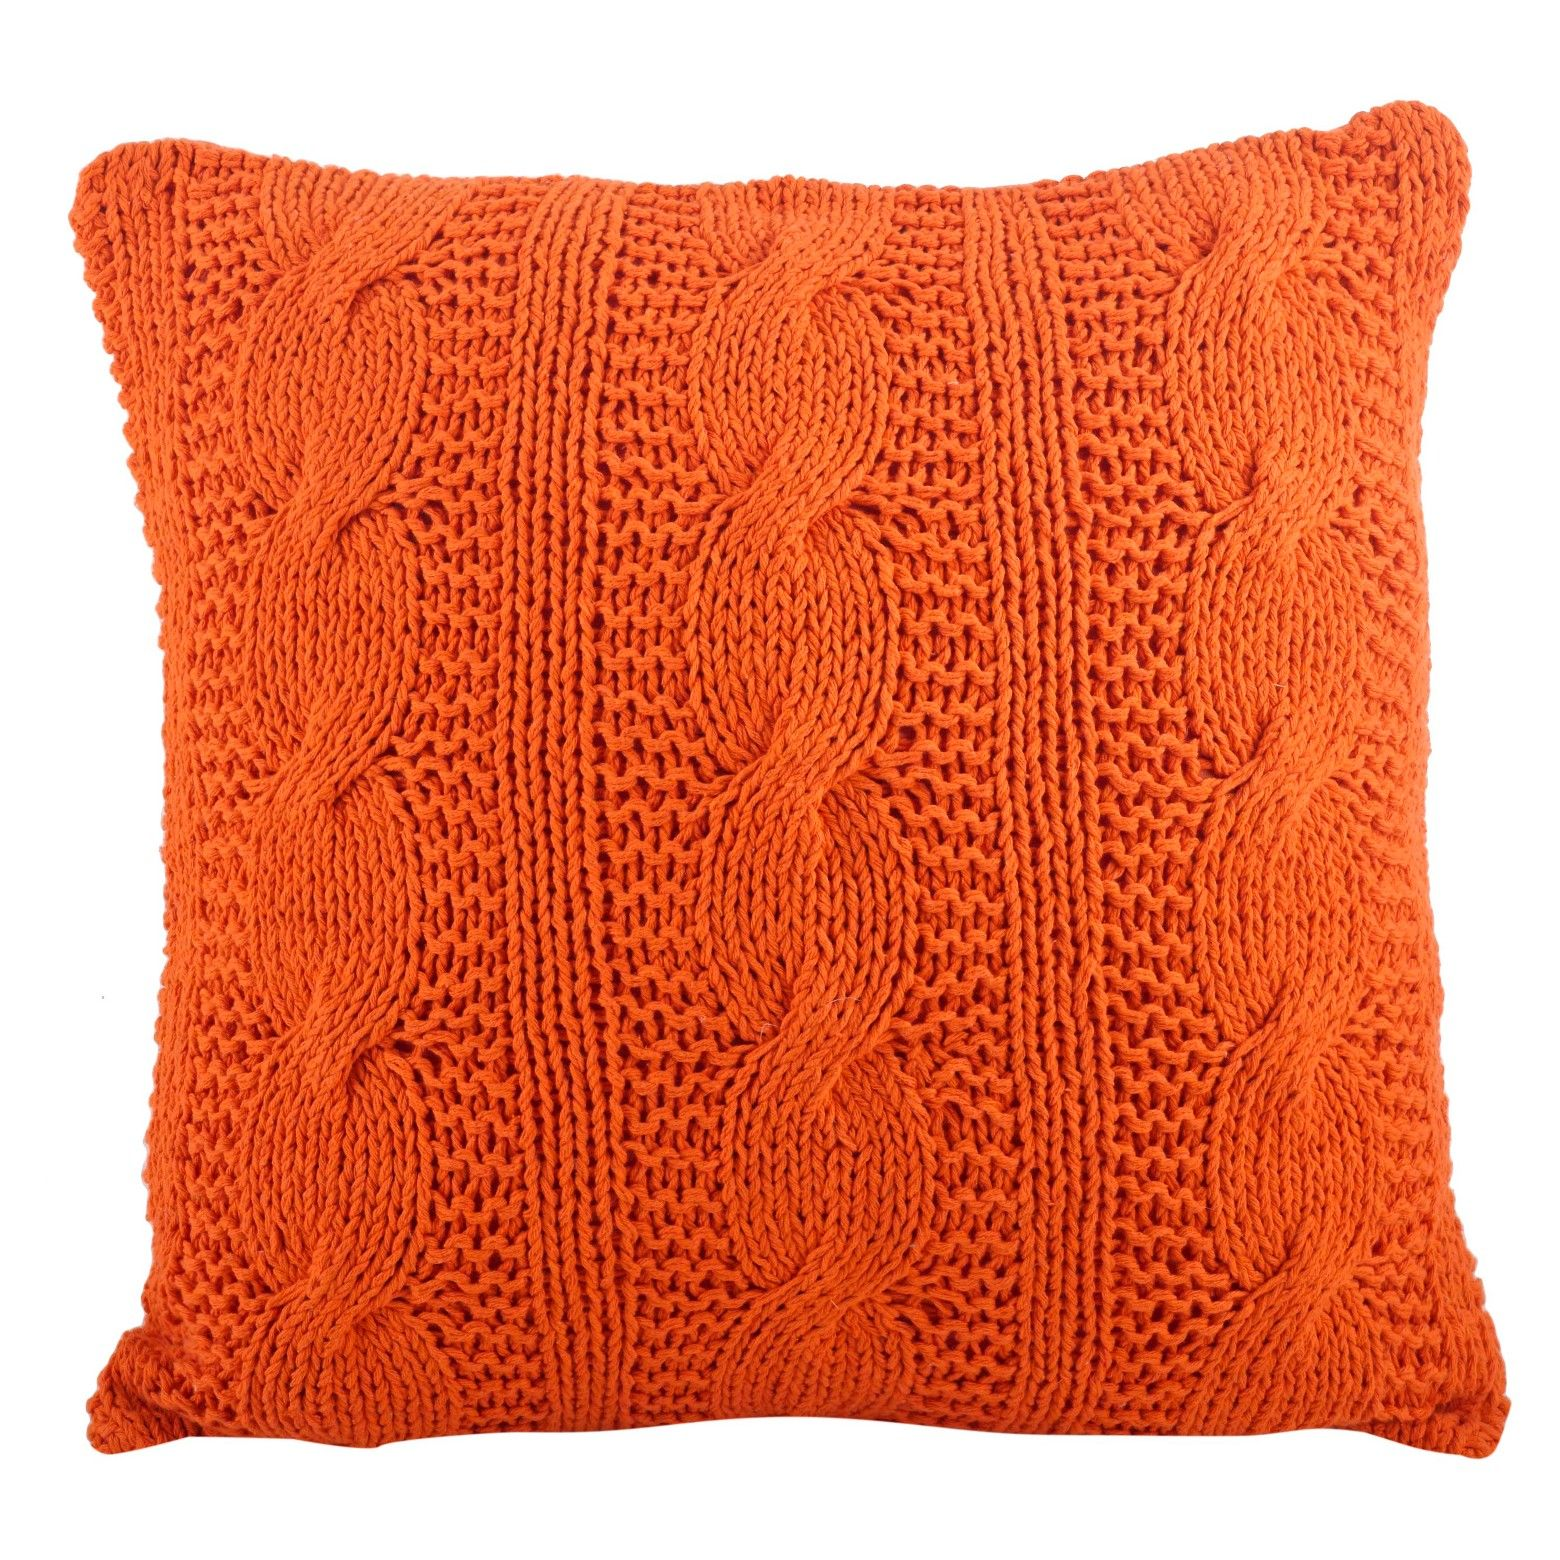 how to wash wool throw pillows